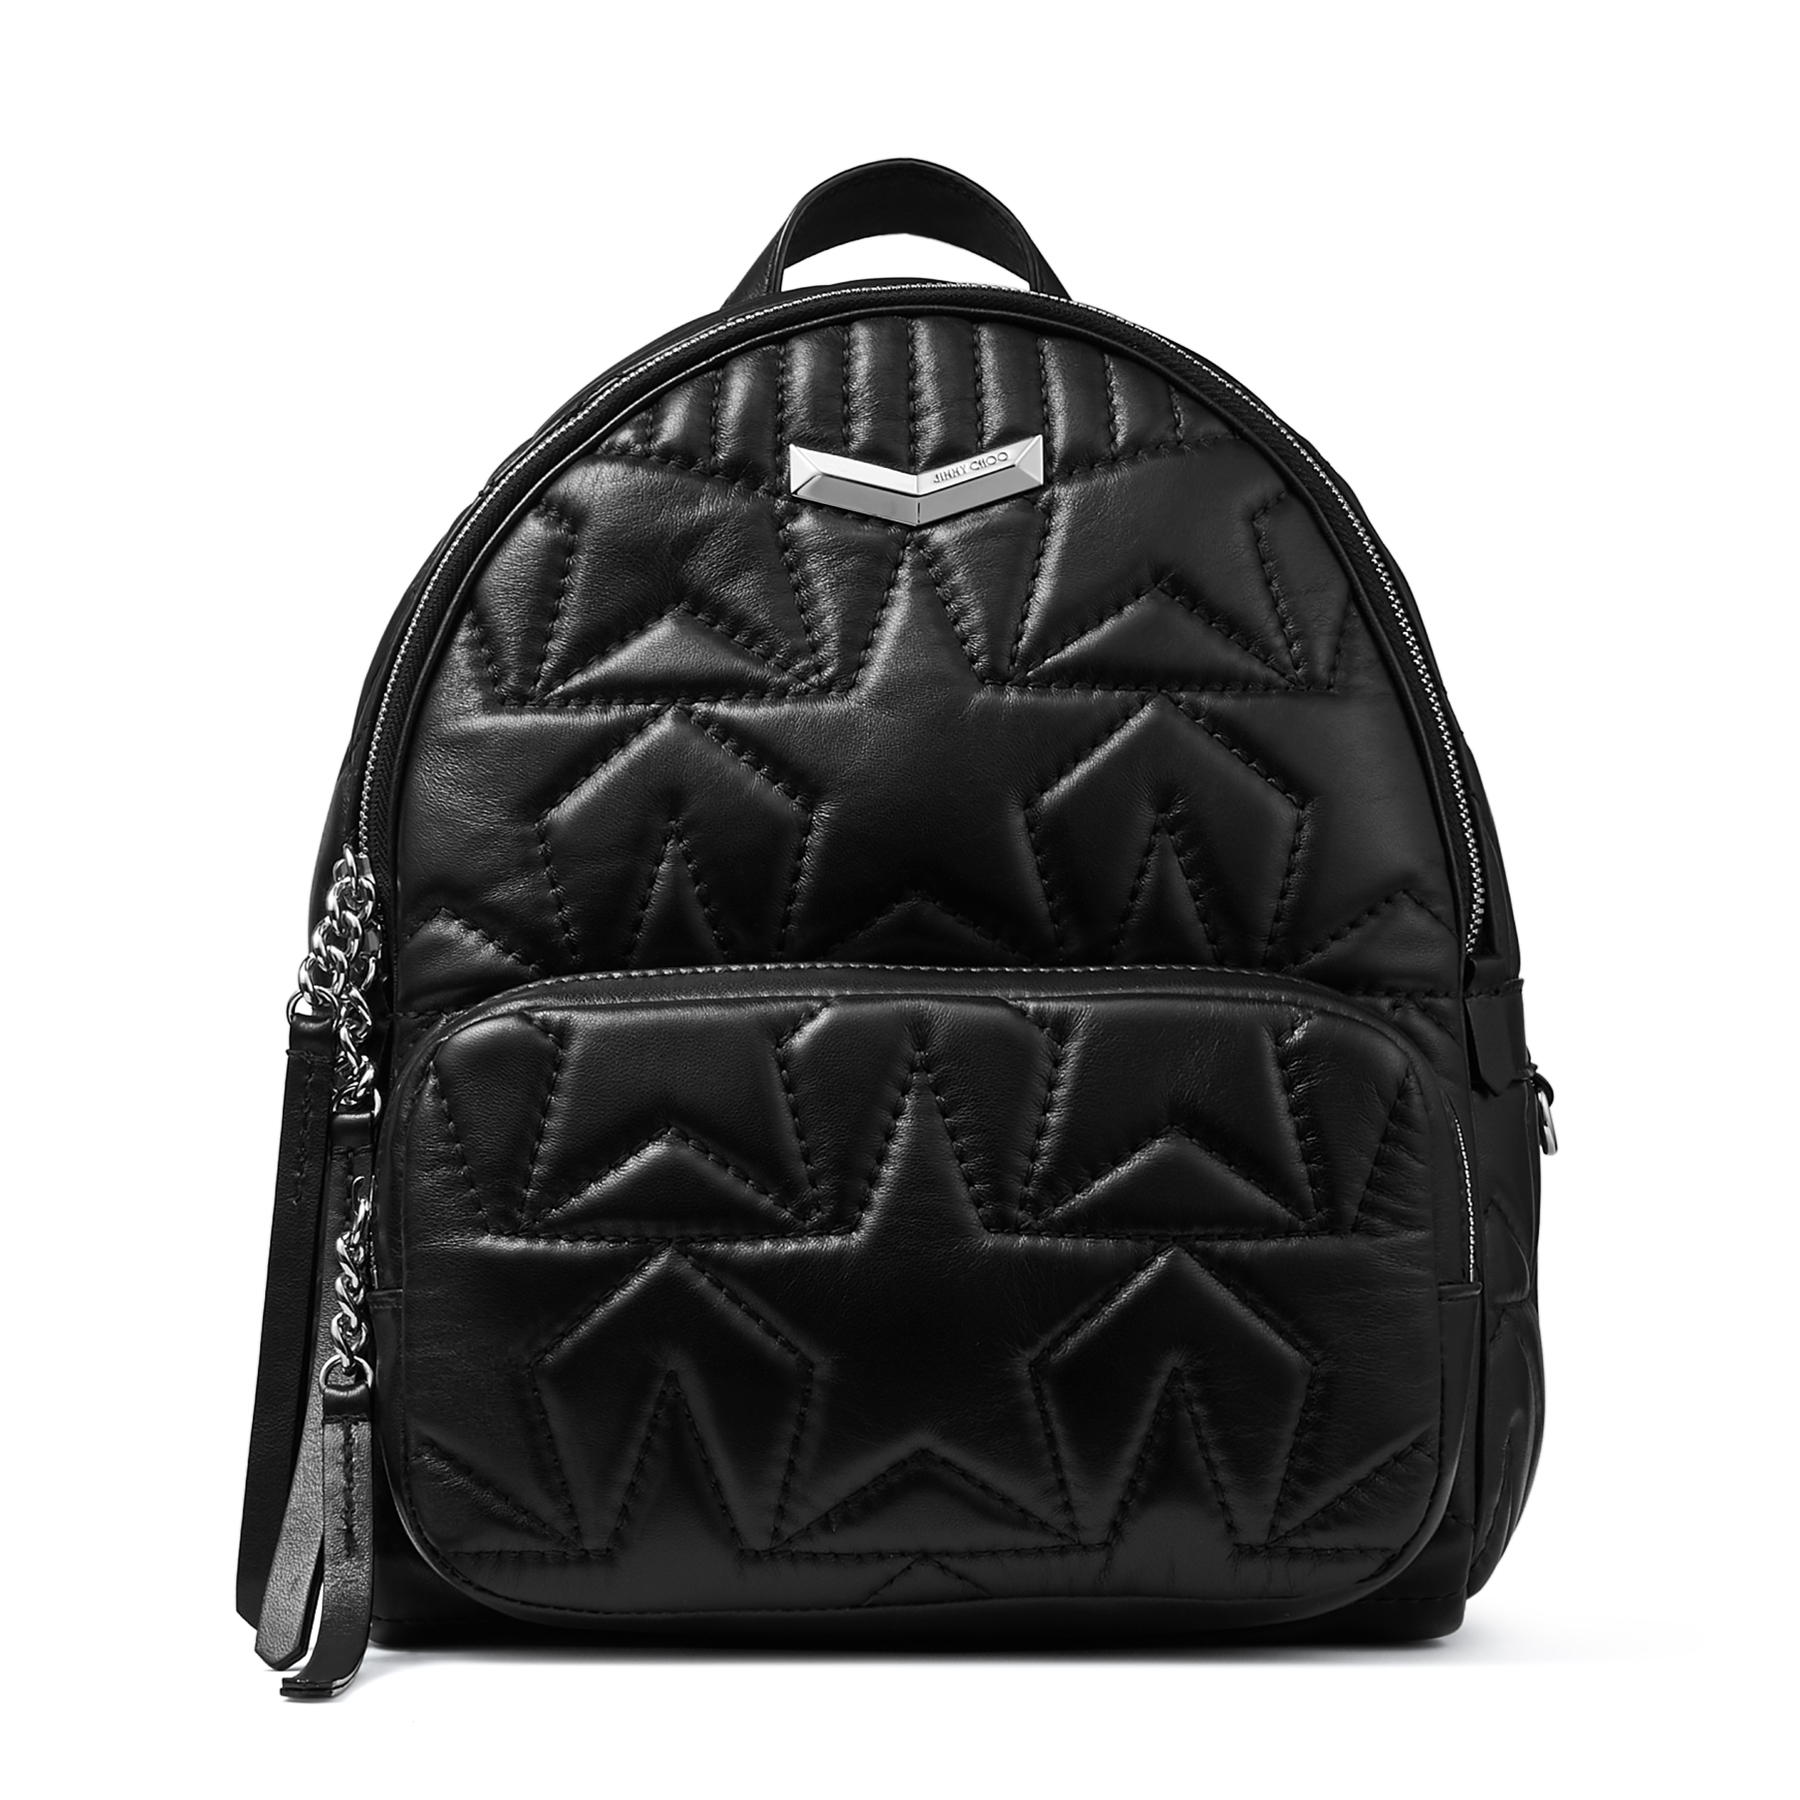 59ba8c640a Women's Backpacks | Women's Designer Bags | Jimmy Choo